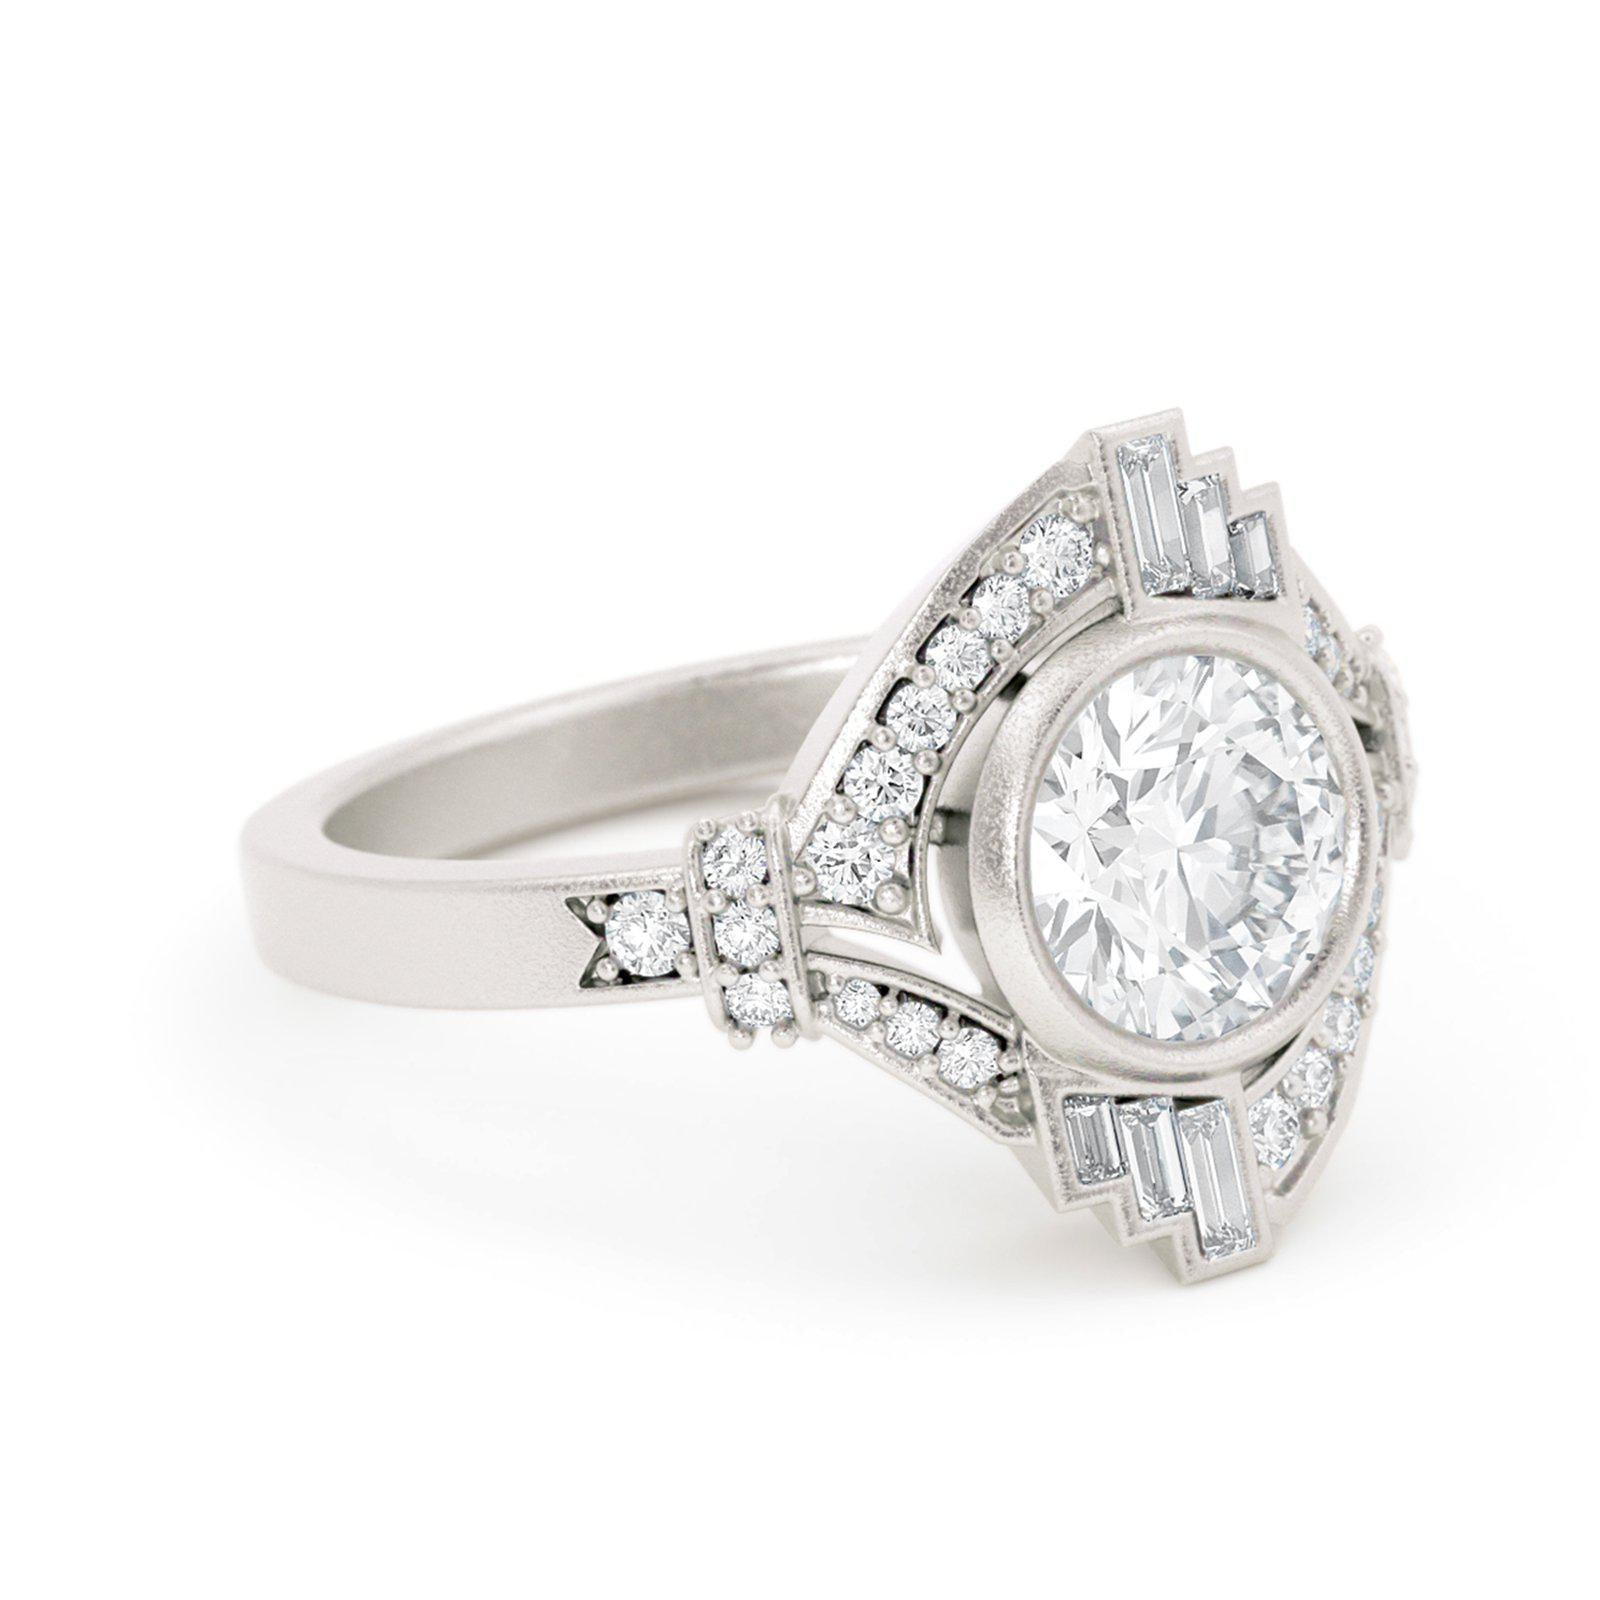 Mabel Louise Art Deco Diamond Ring